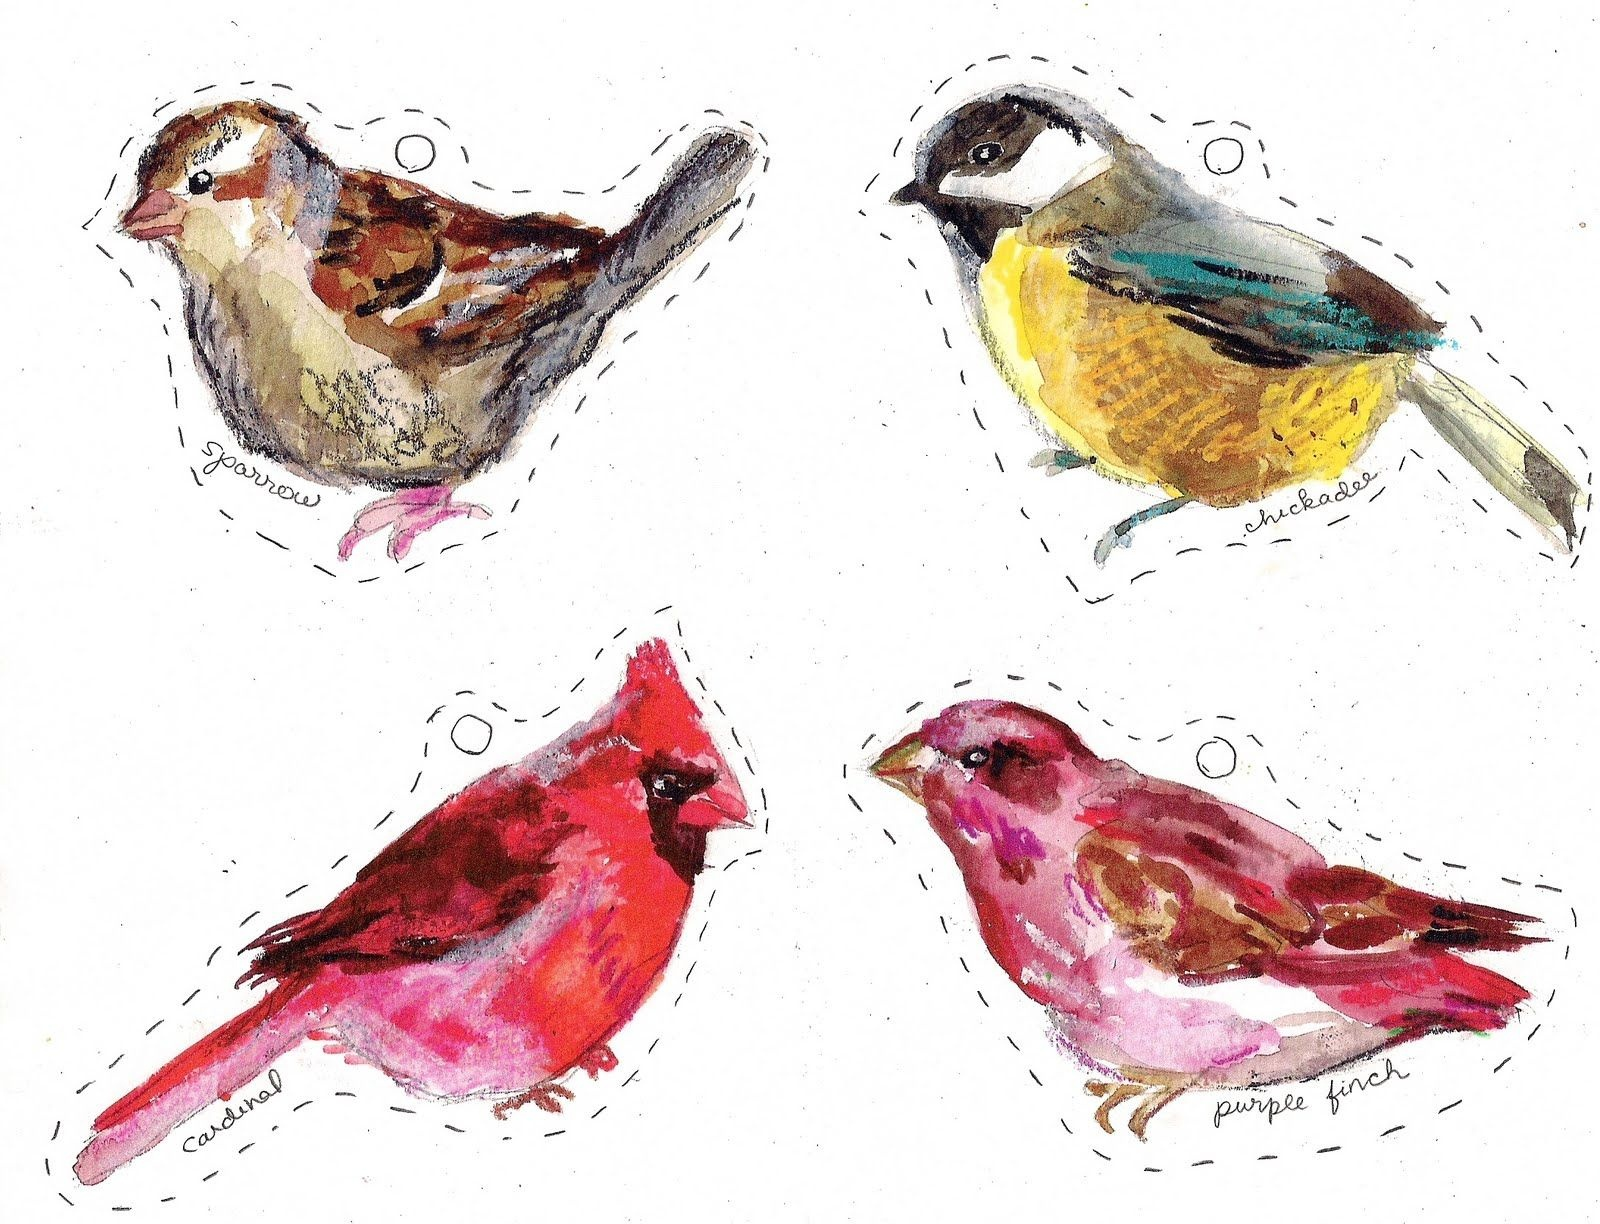 Winter Birds Free Printables | Craft | Gift Tags Printable, Birds - Free Printable Images Of Birds